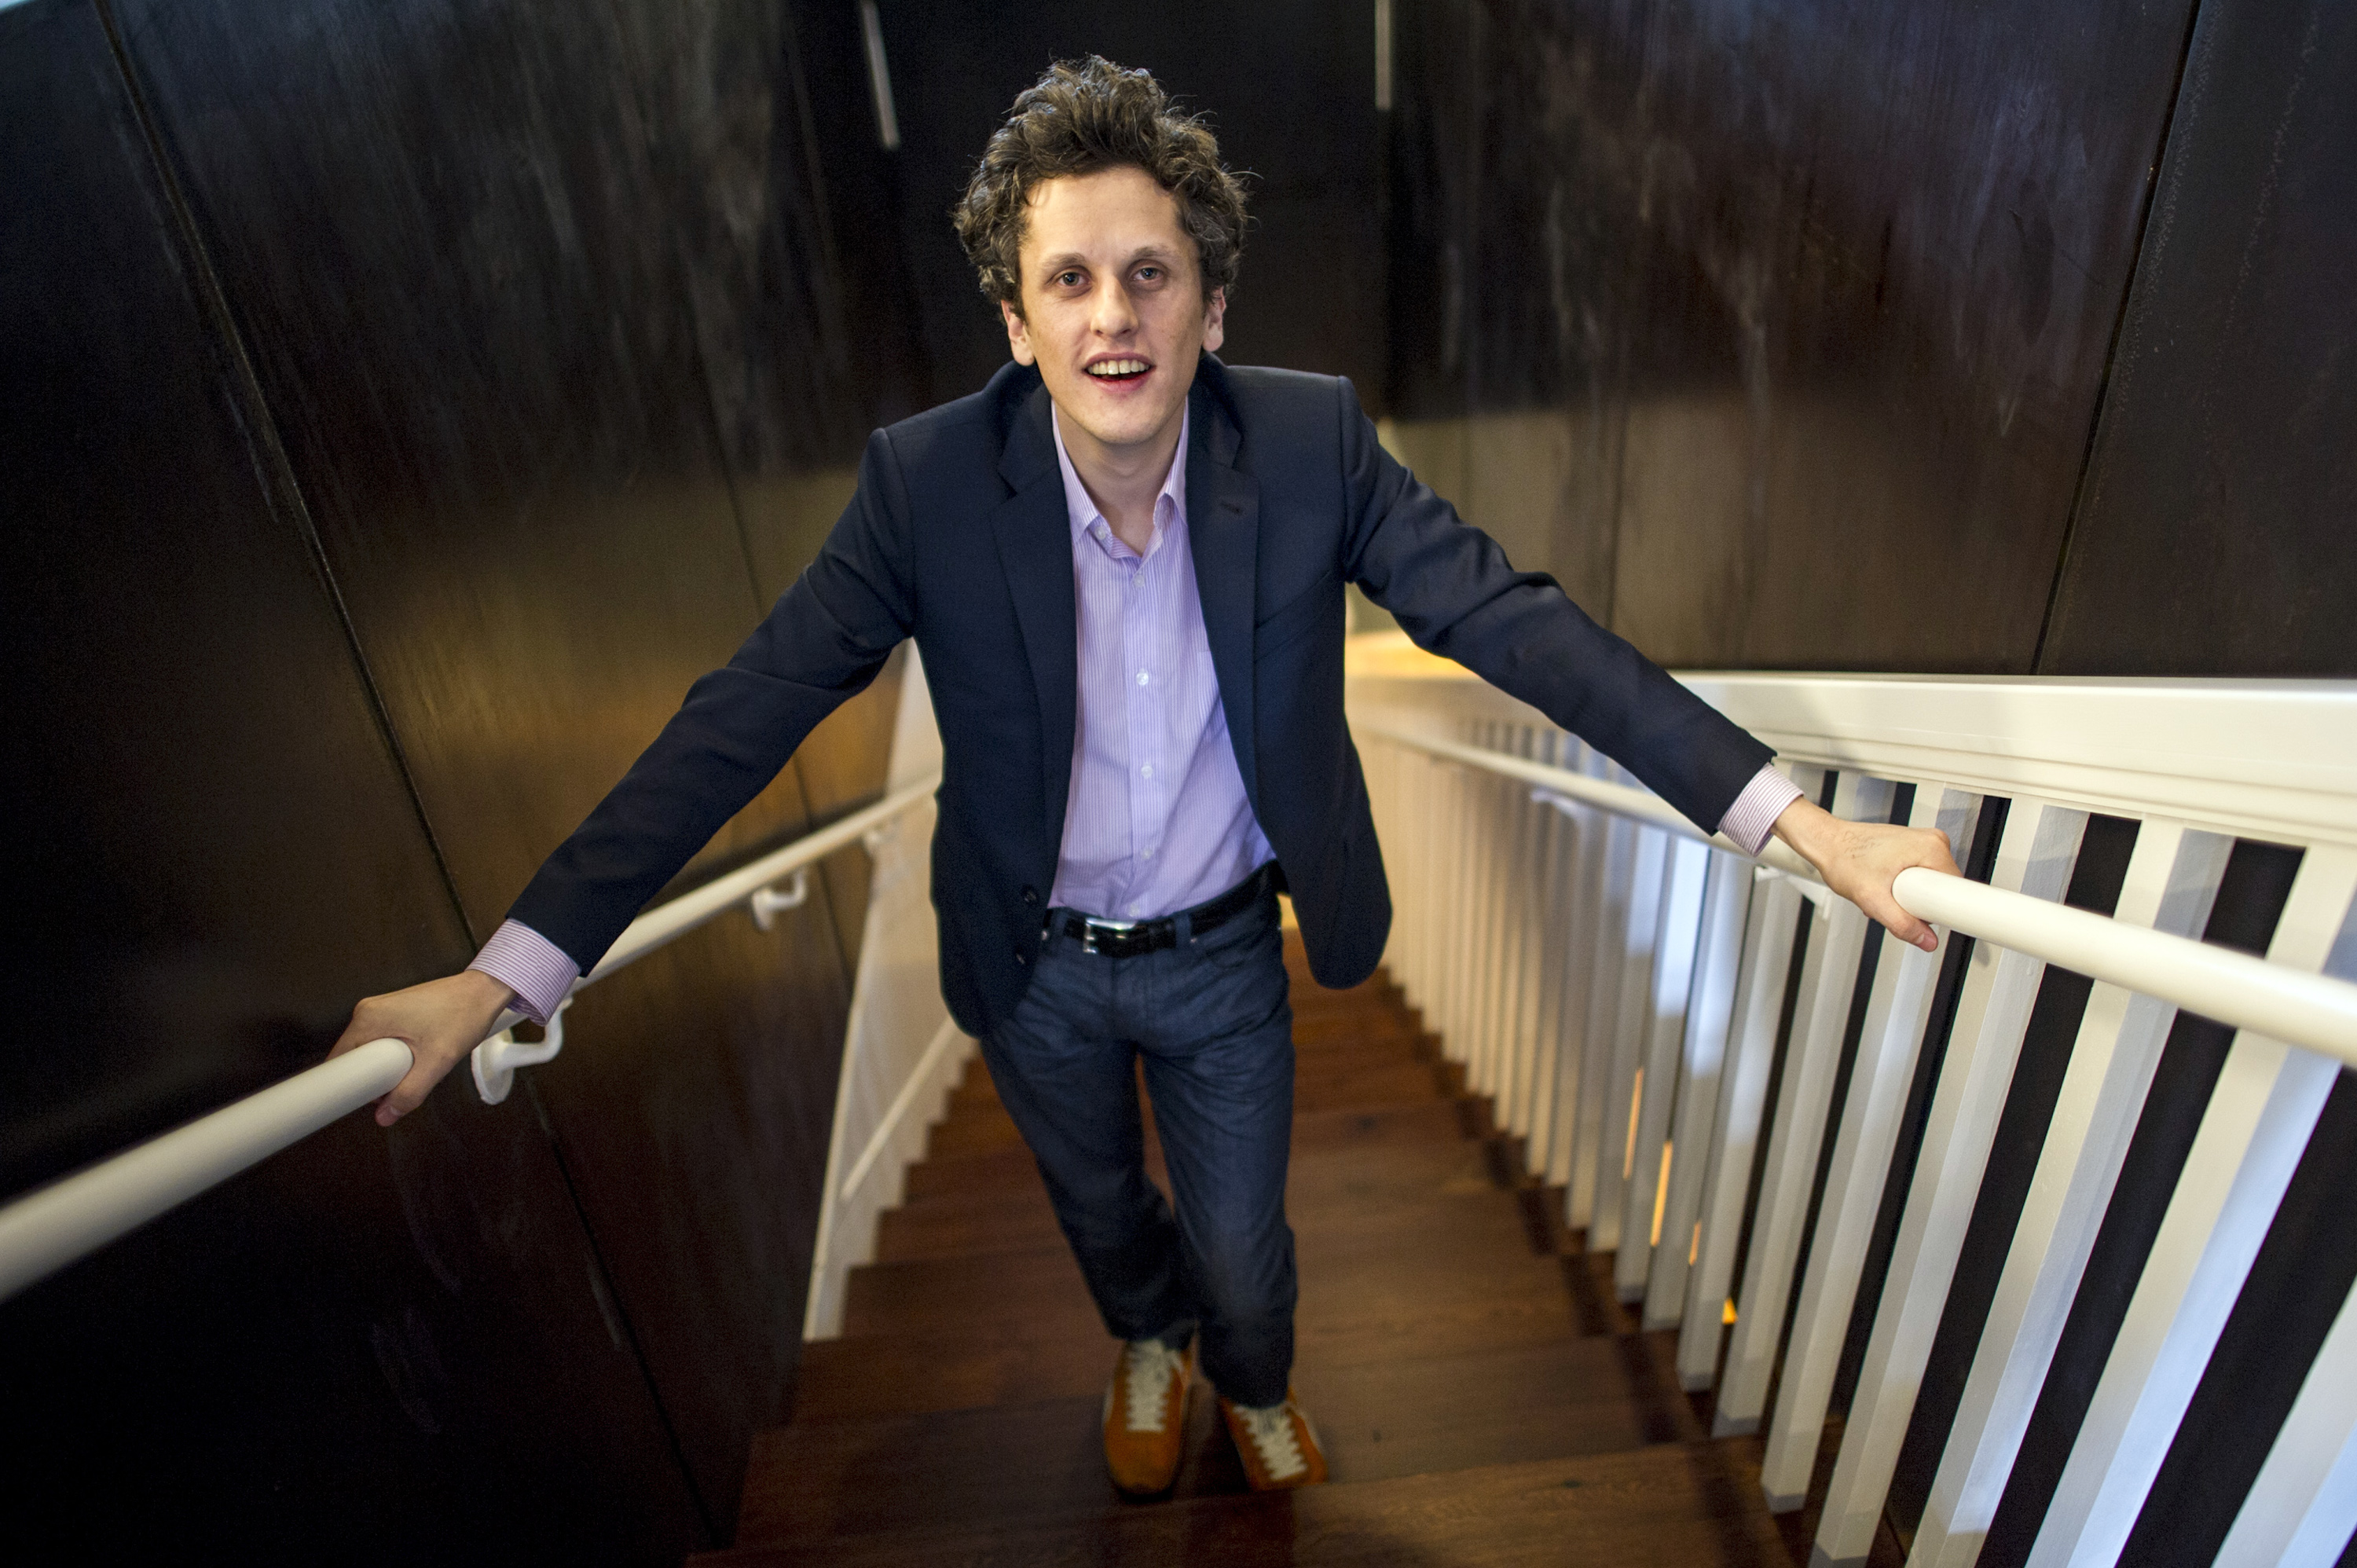 Aaron Levie, co-founder and chief executive officer of Box Inc.